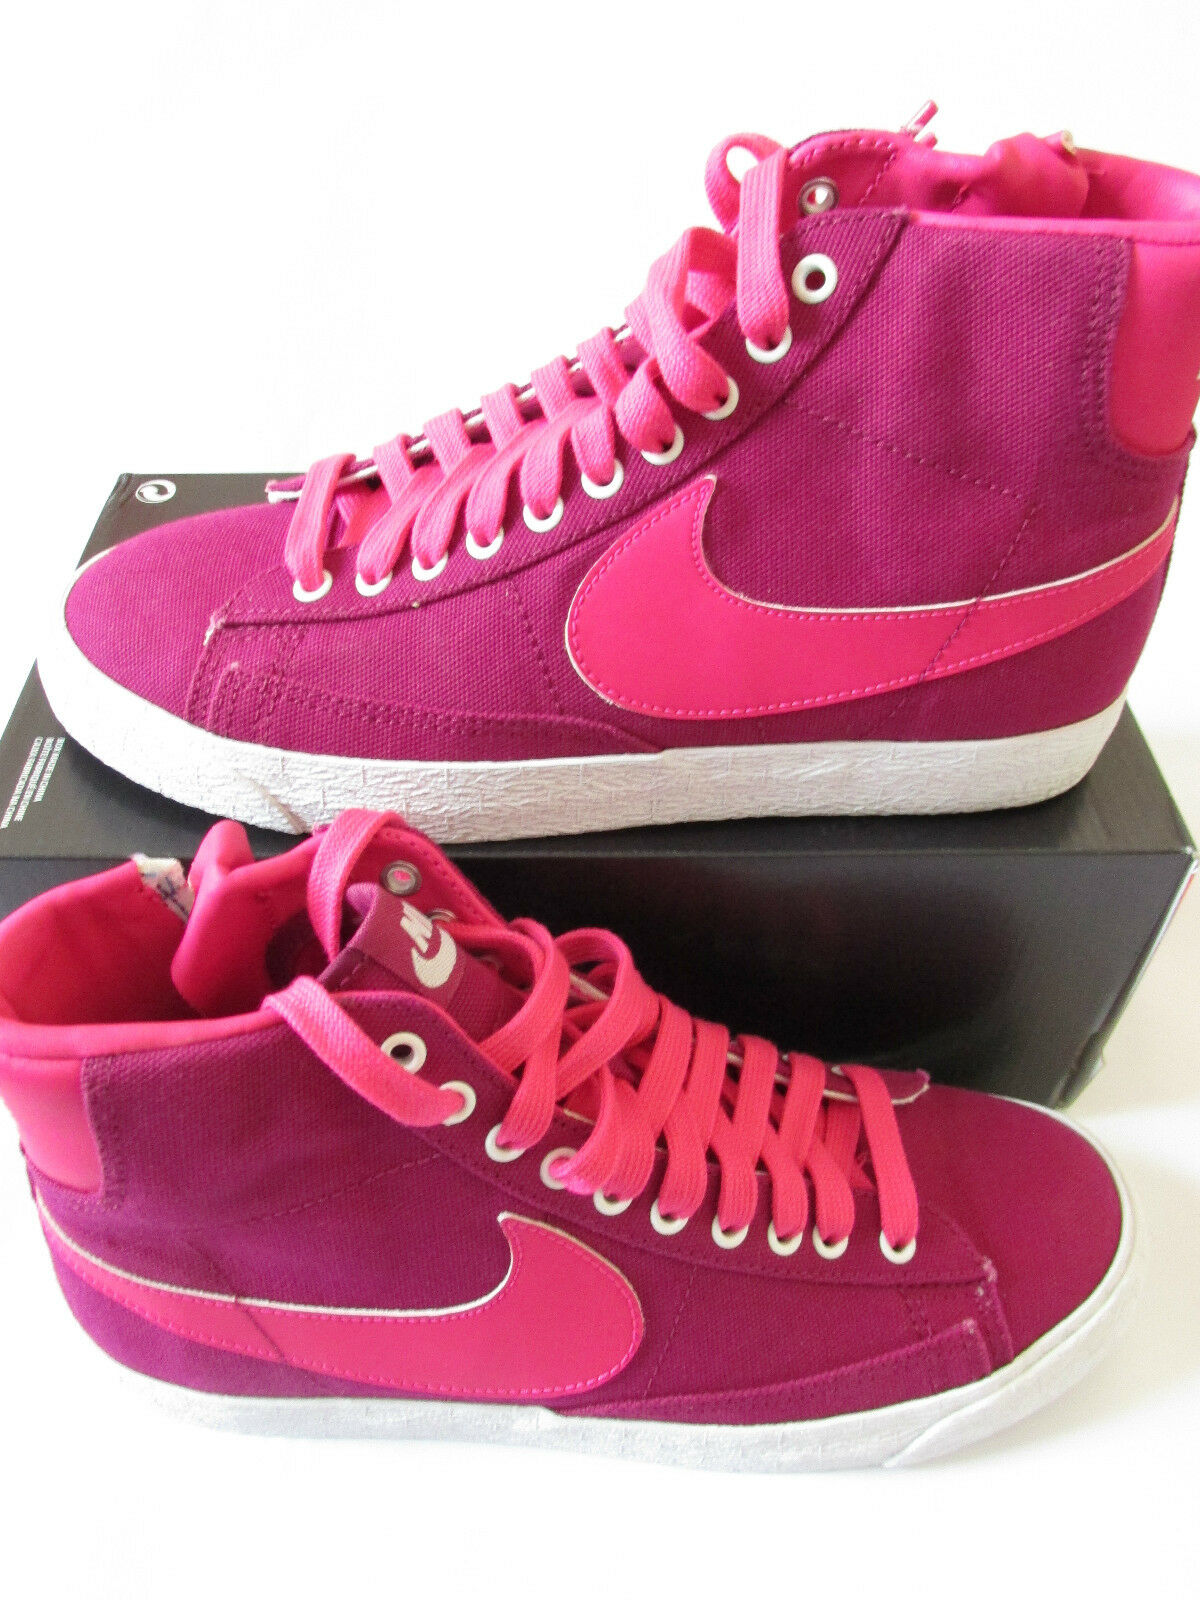 Nike ID blazer mid Damenss 5.5 trainers 616827 992 uk 5.5 Damenss us 8 eu 39 7820d0